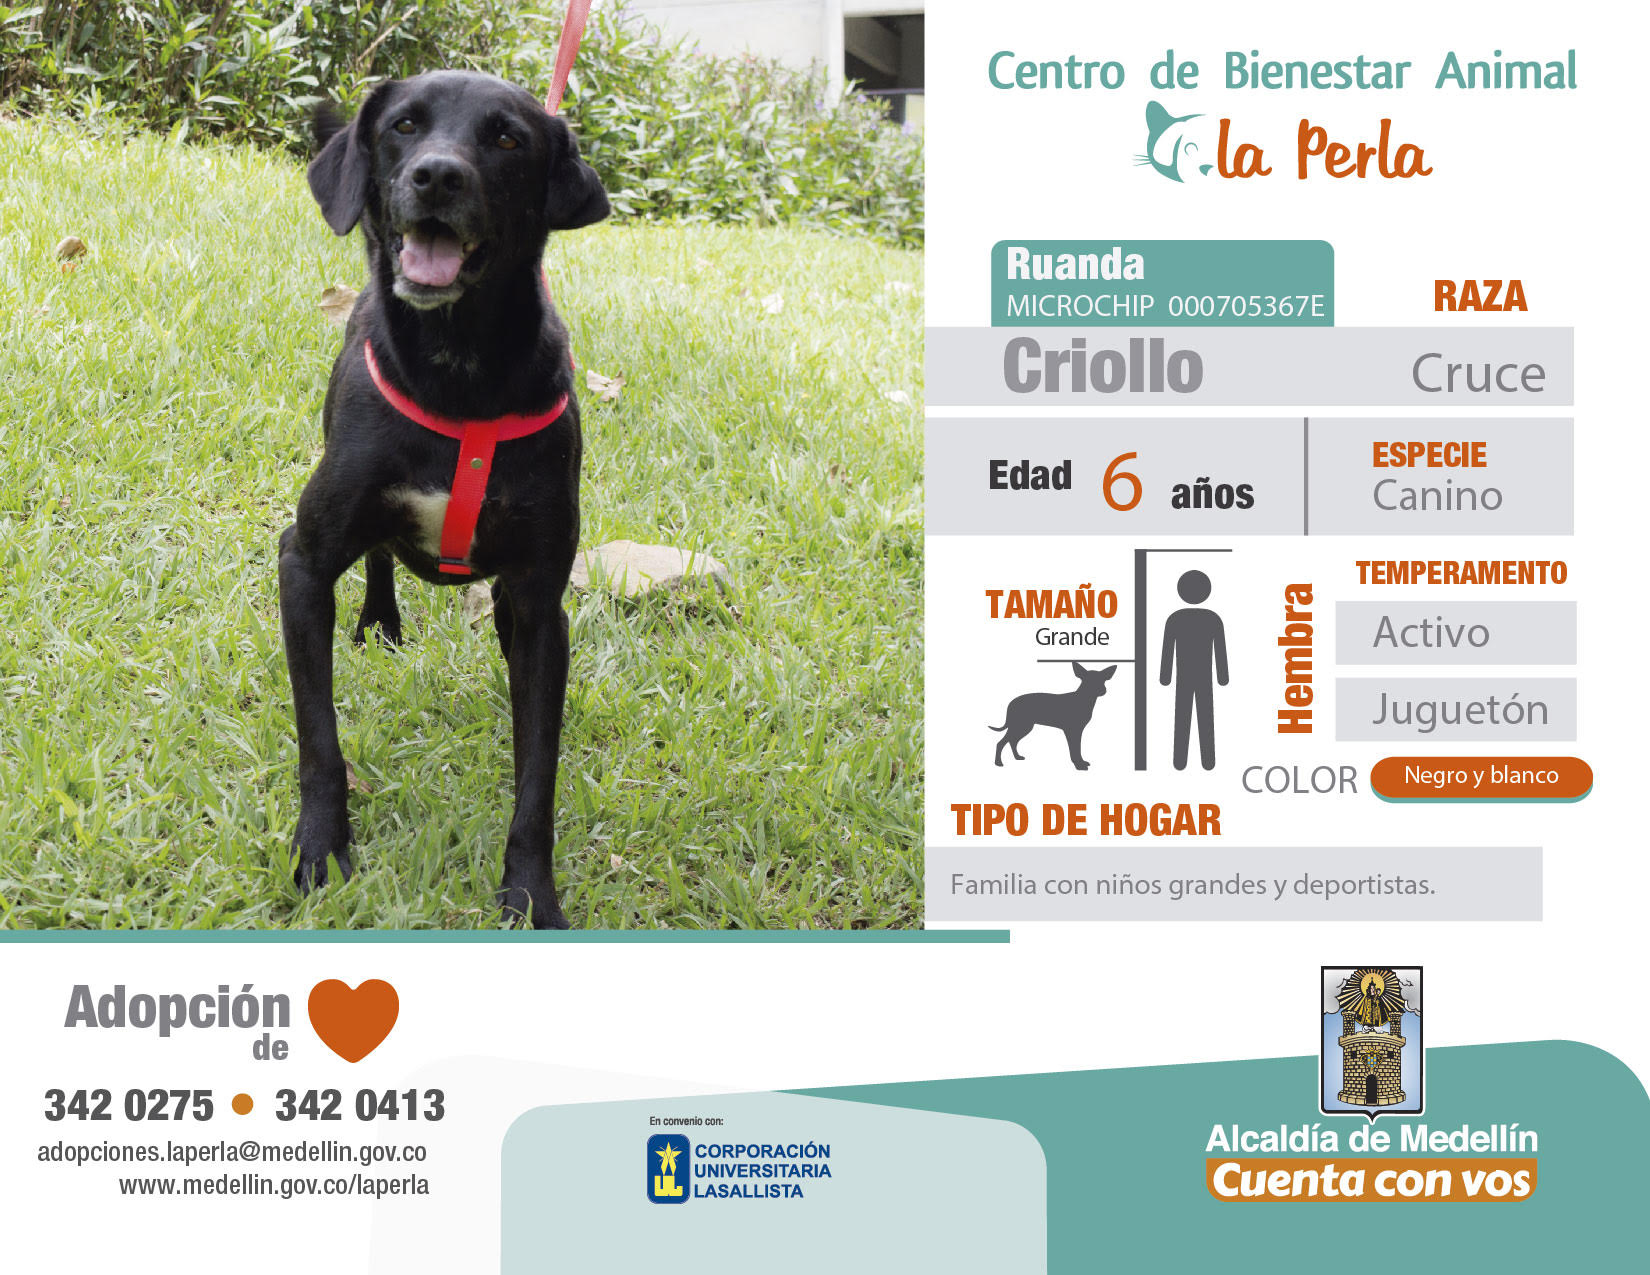 adopciones-animal-la-revista-la-perla